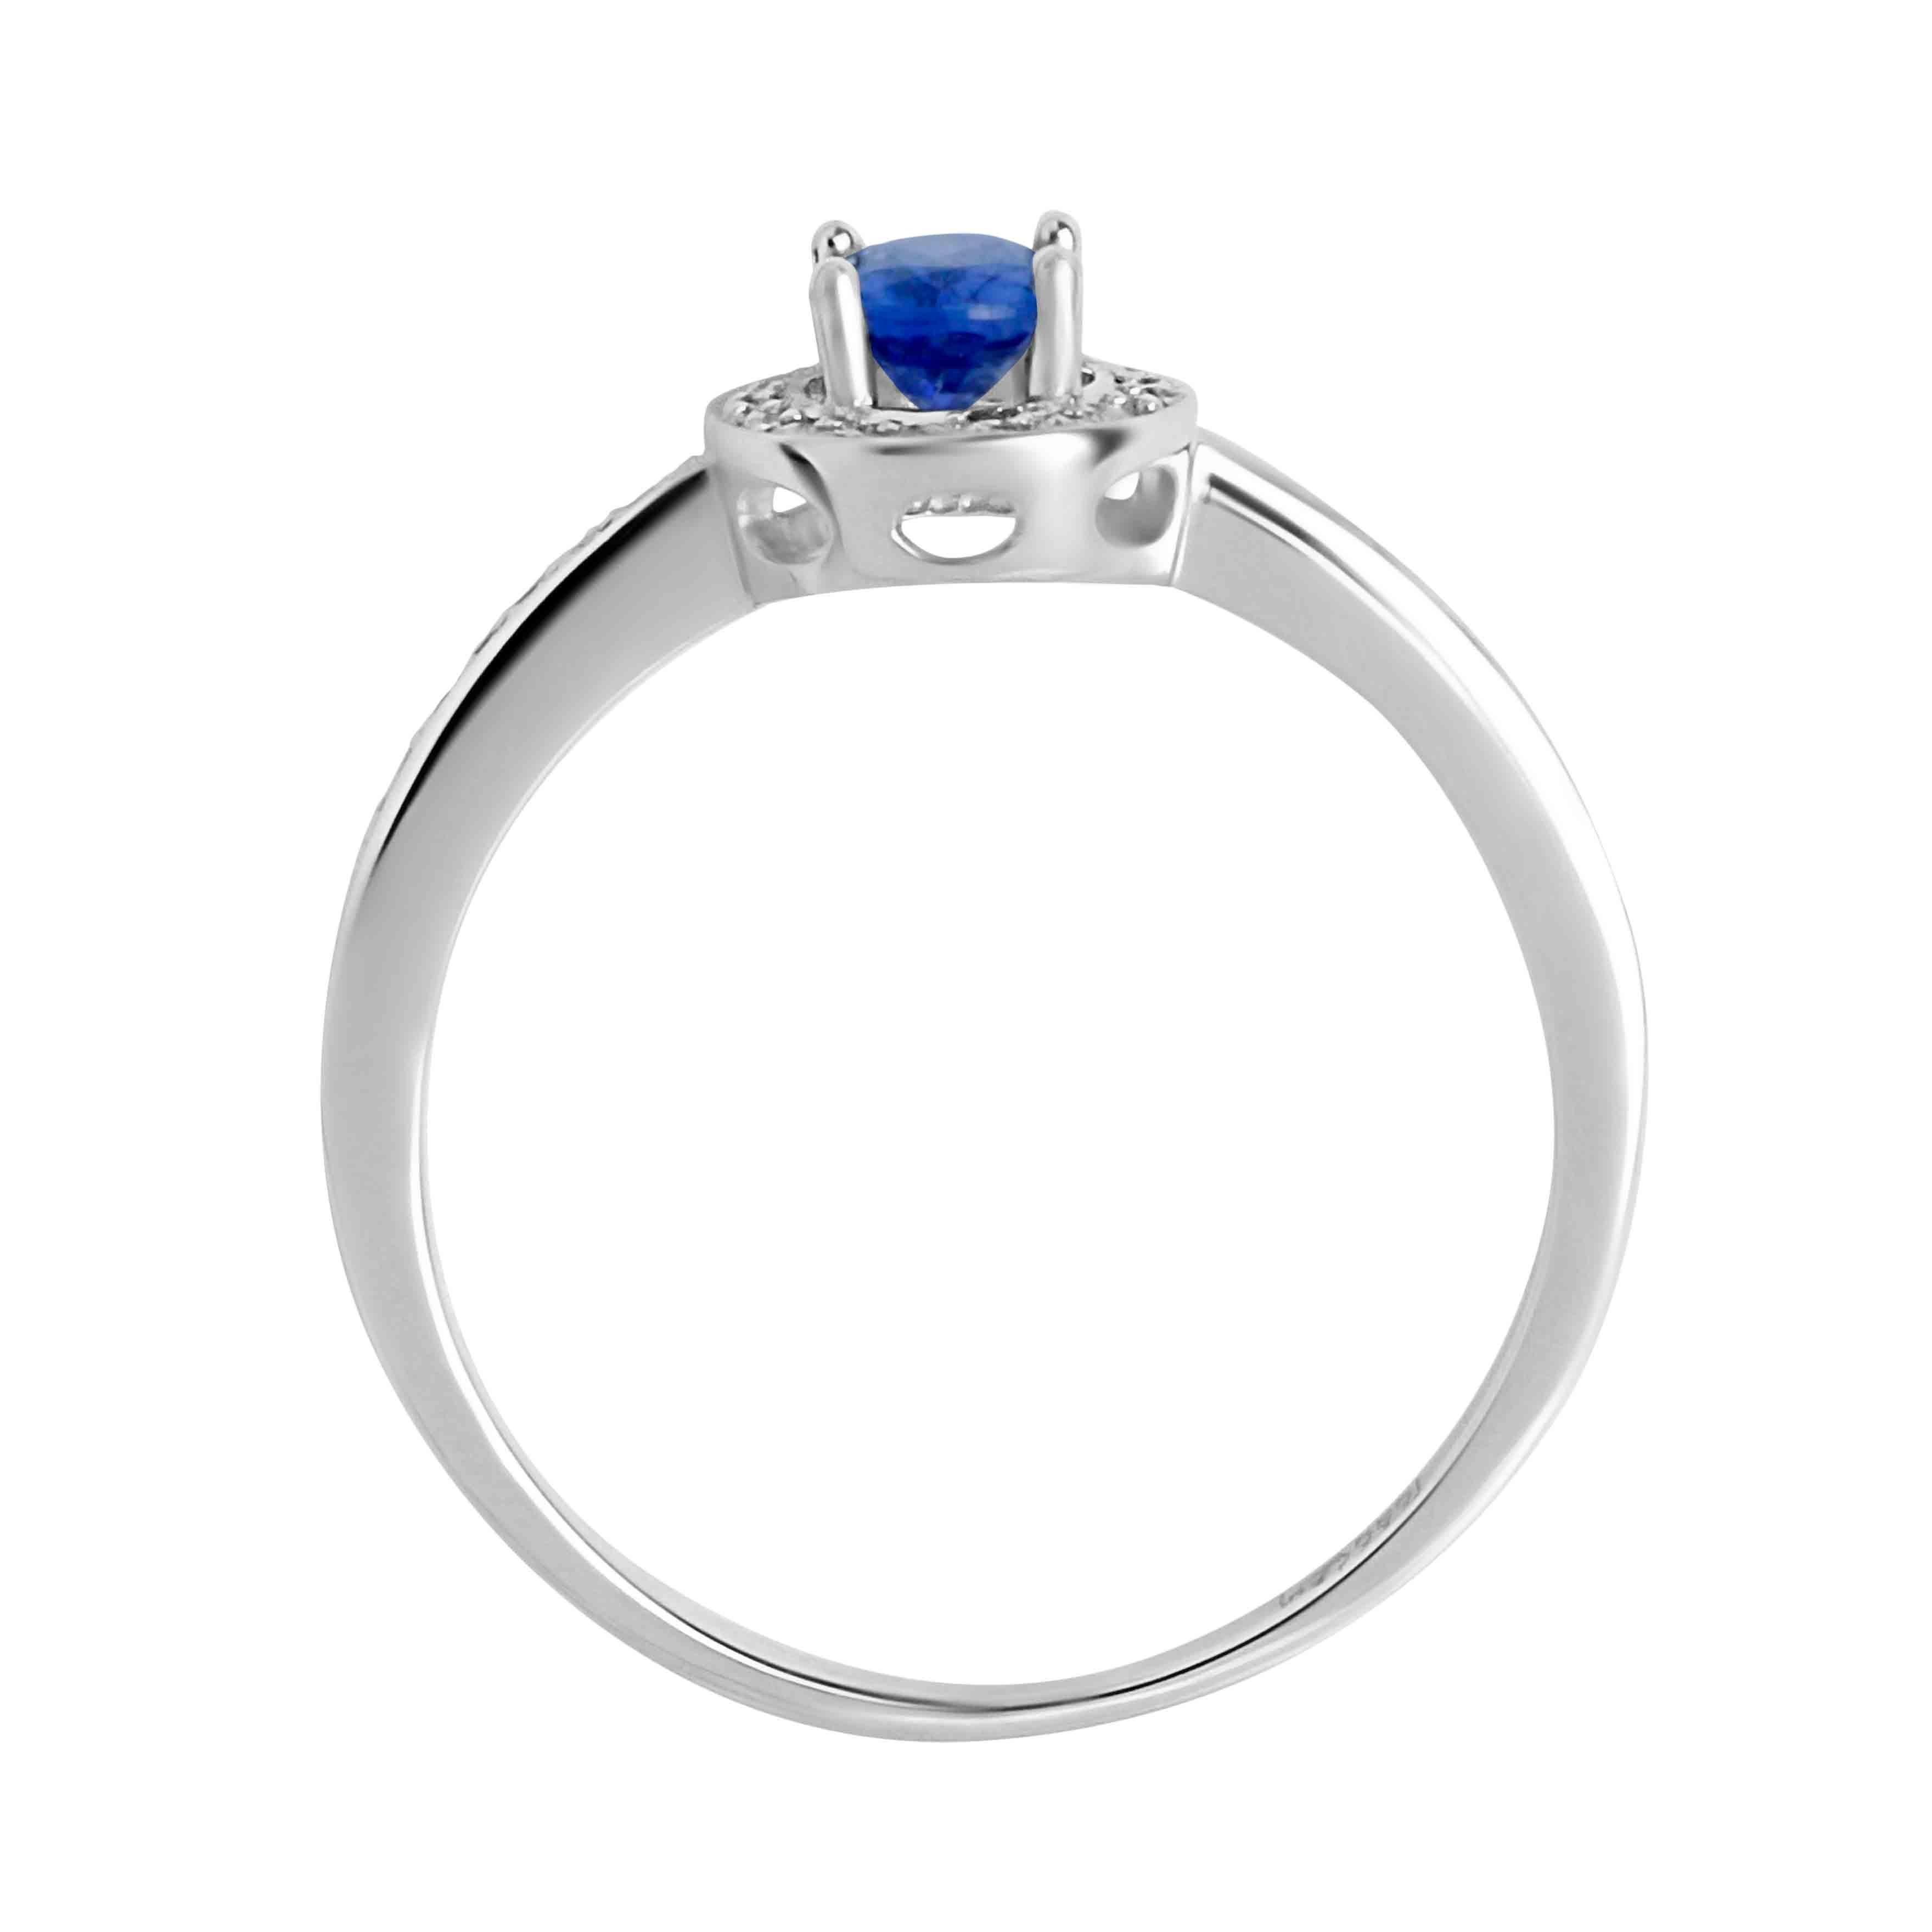 Hypoallergenic white gold sapphire ring. View 3.